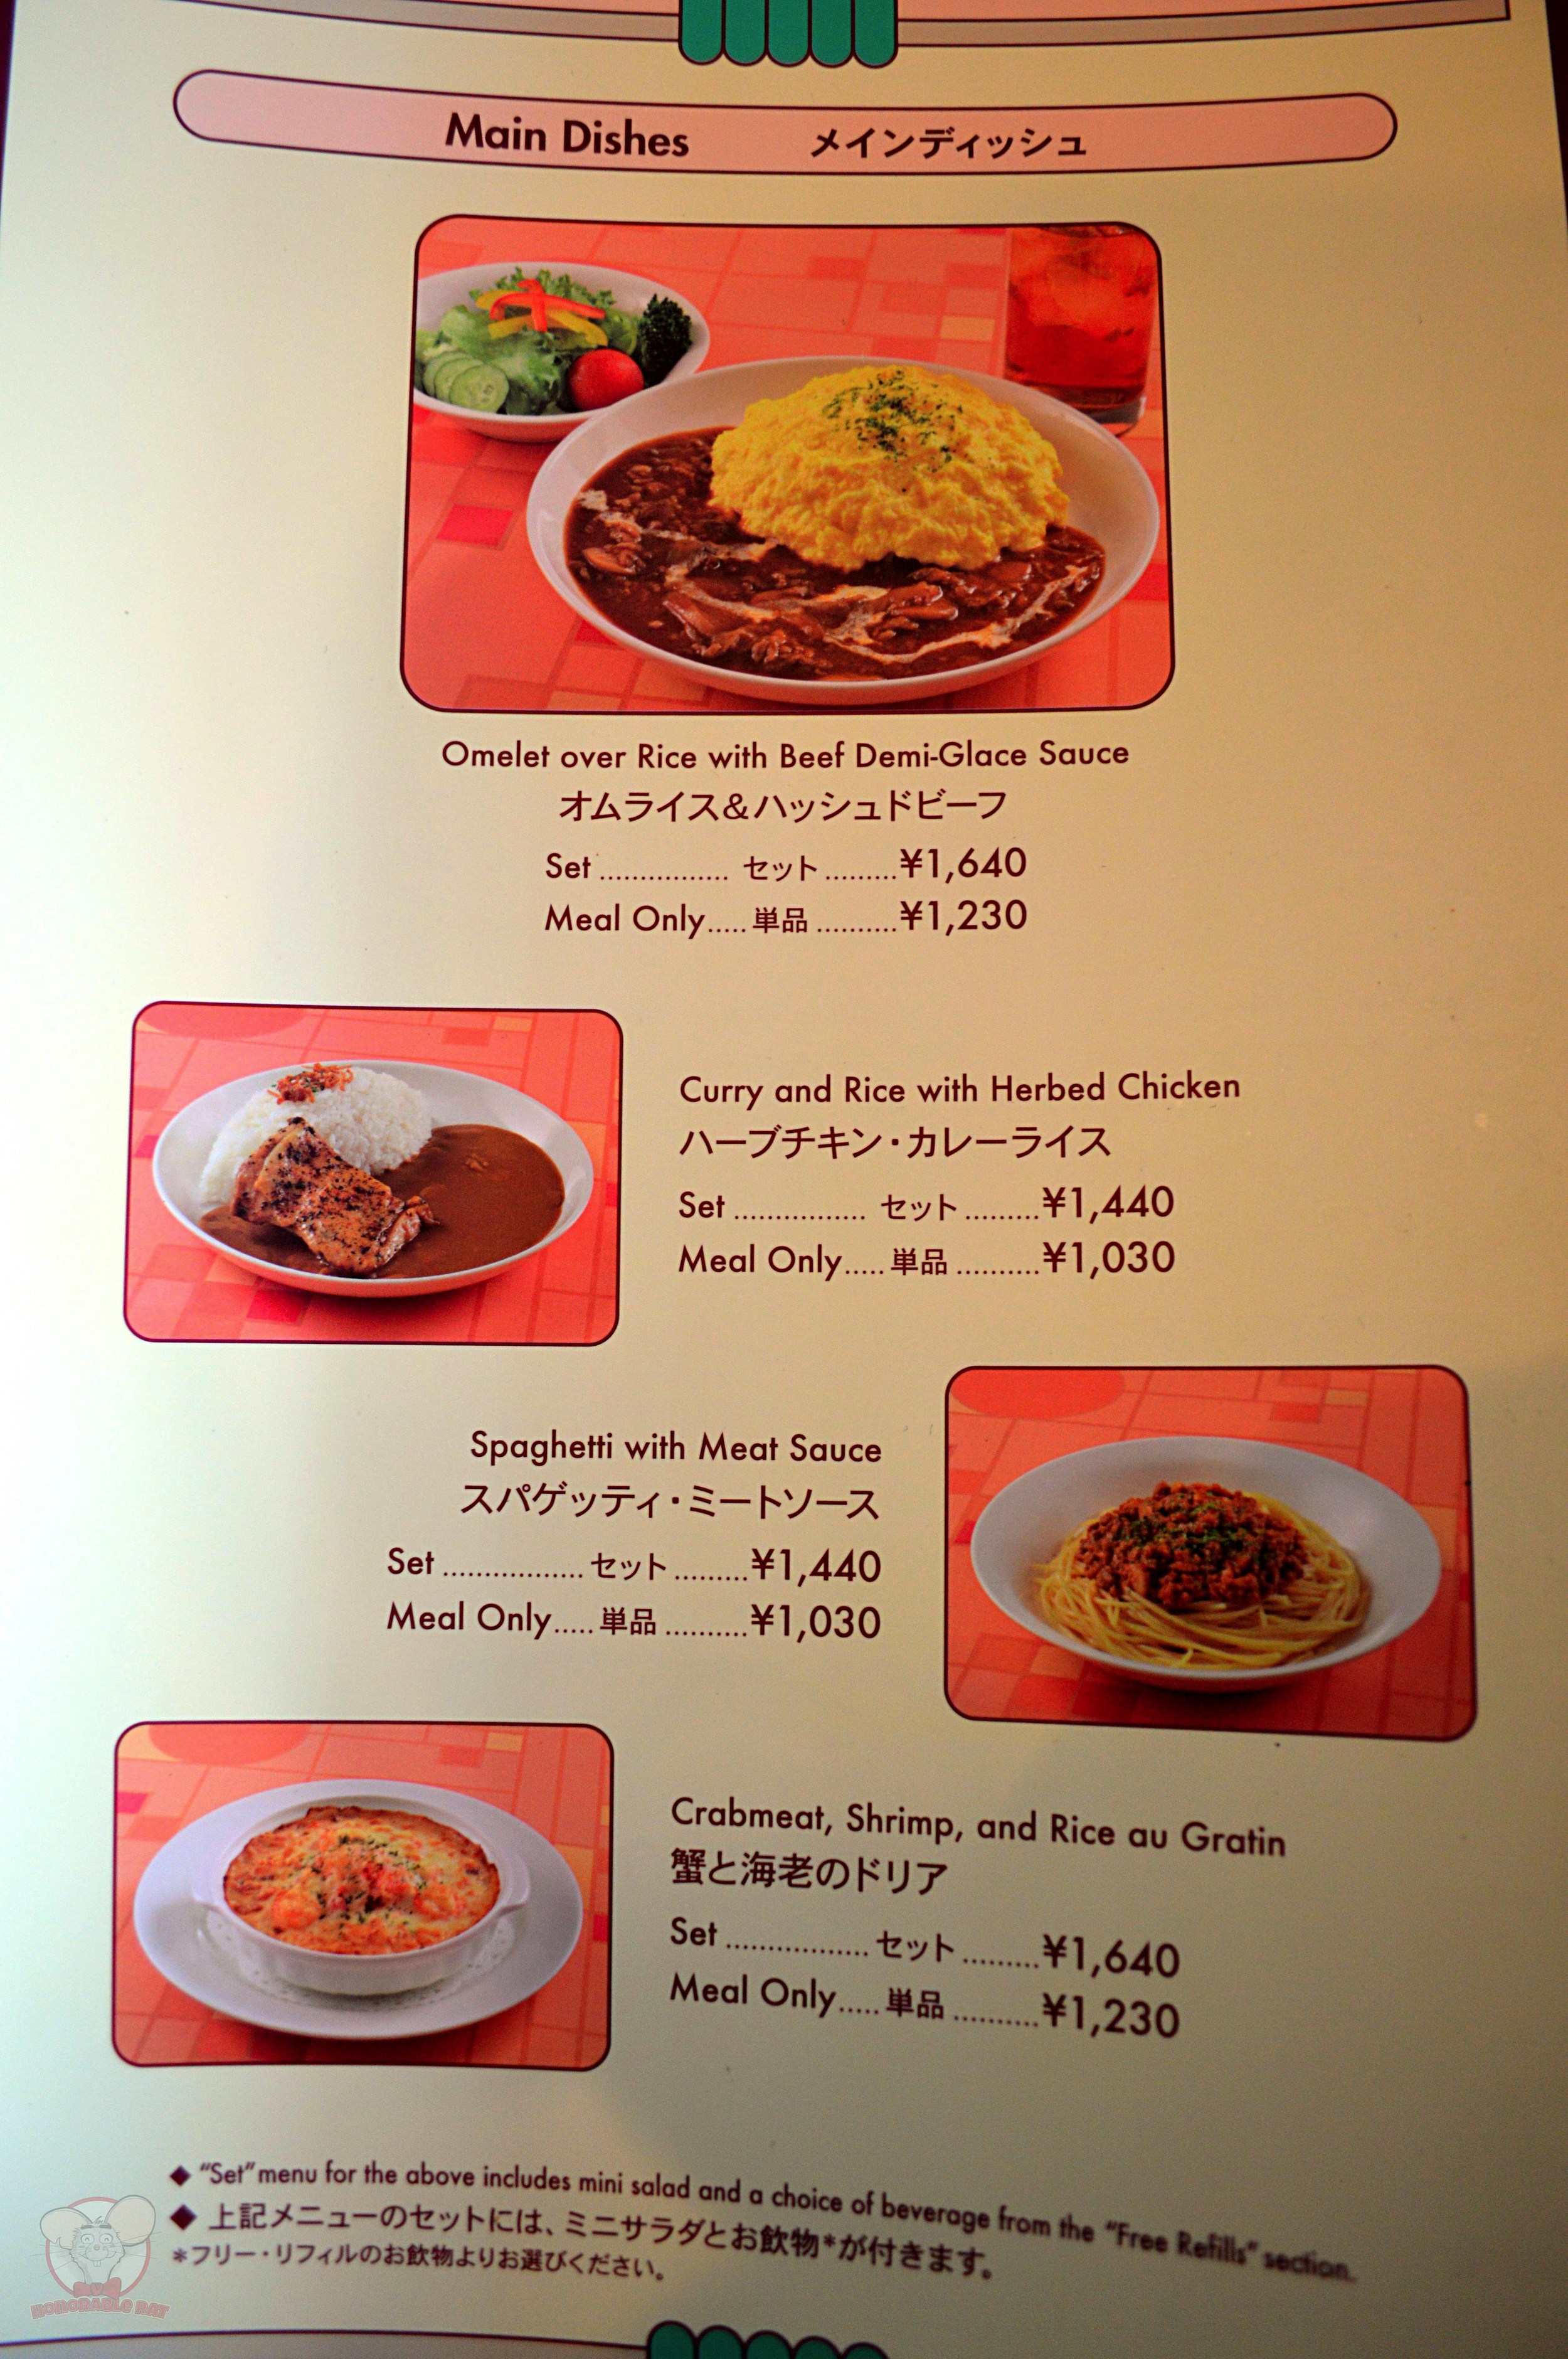 Center Street Coffeehouse Menu, Main Dishes (A)